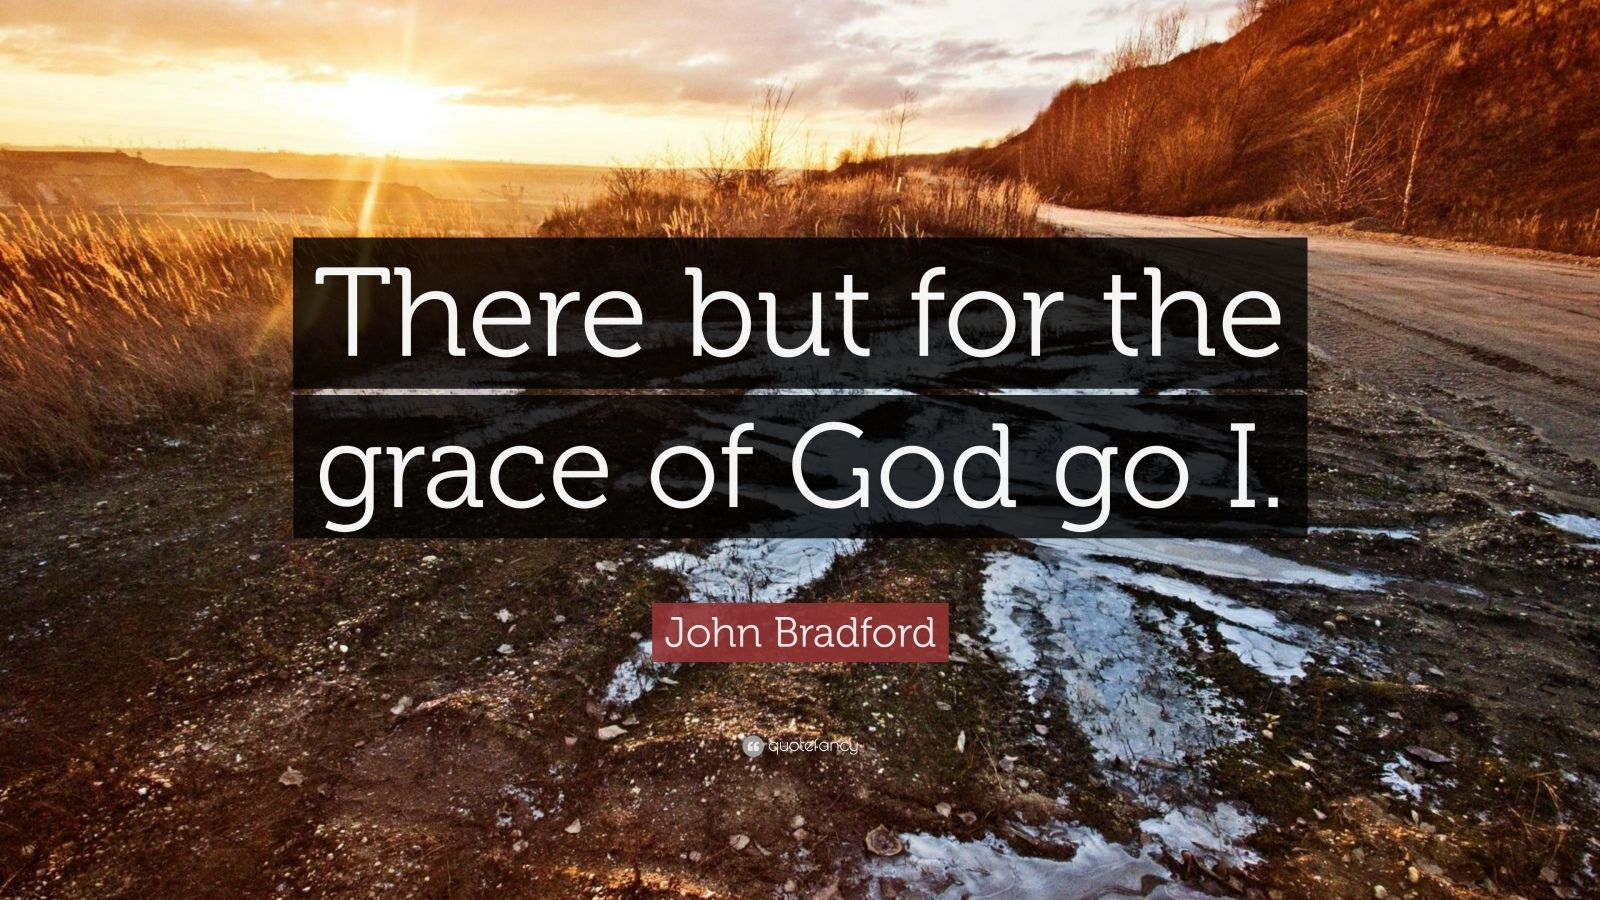 Steve Jobs Motivational Quotes Wallpaper John Bradford Quote There But For The Grace Of God Go I